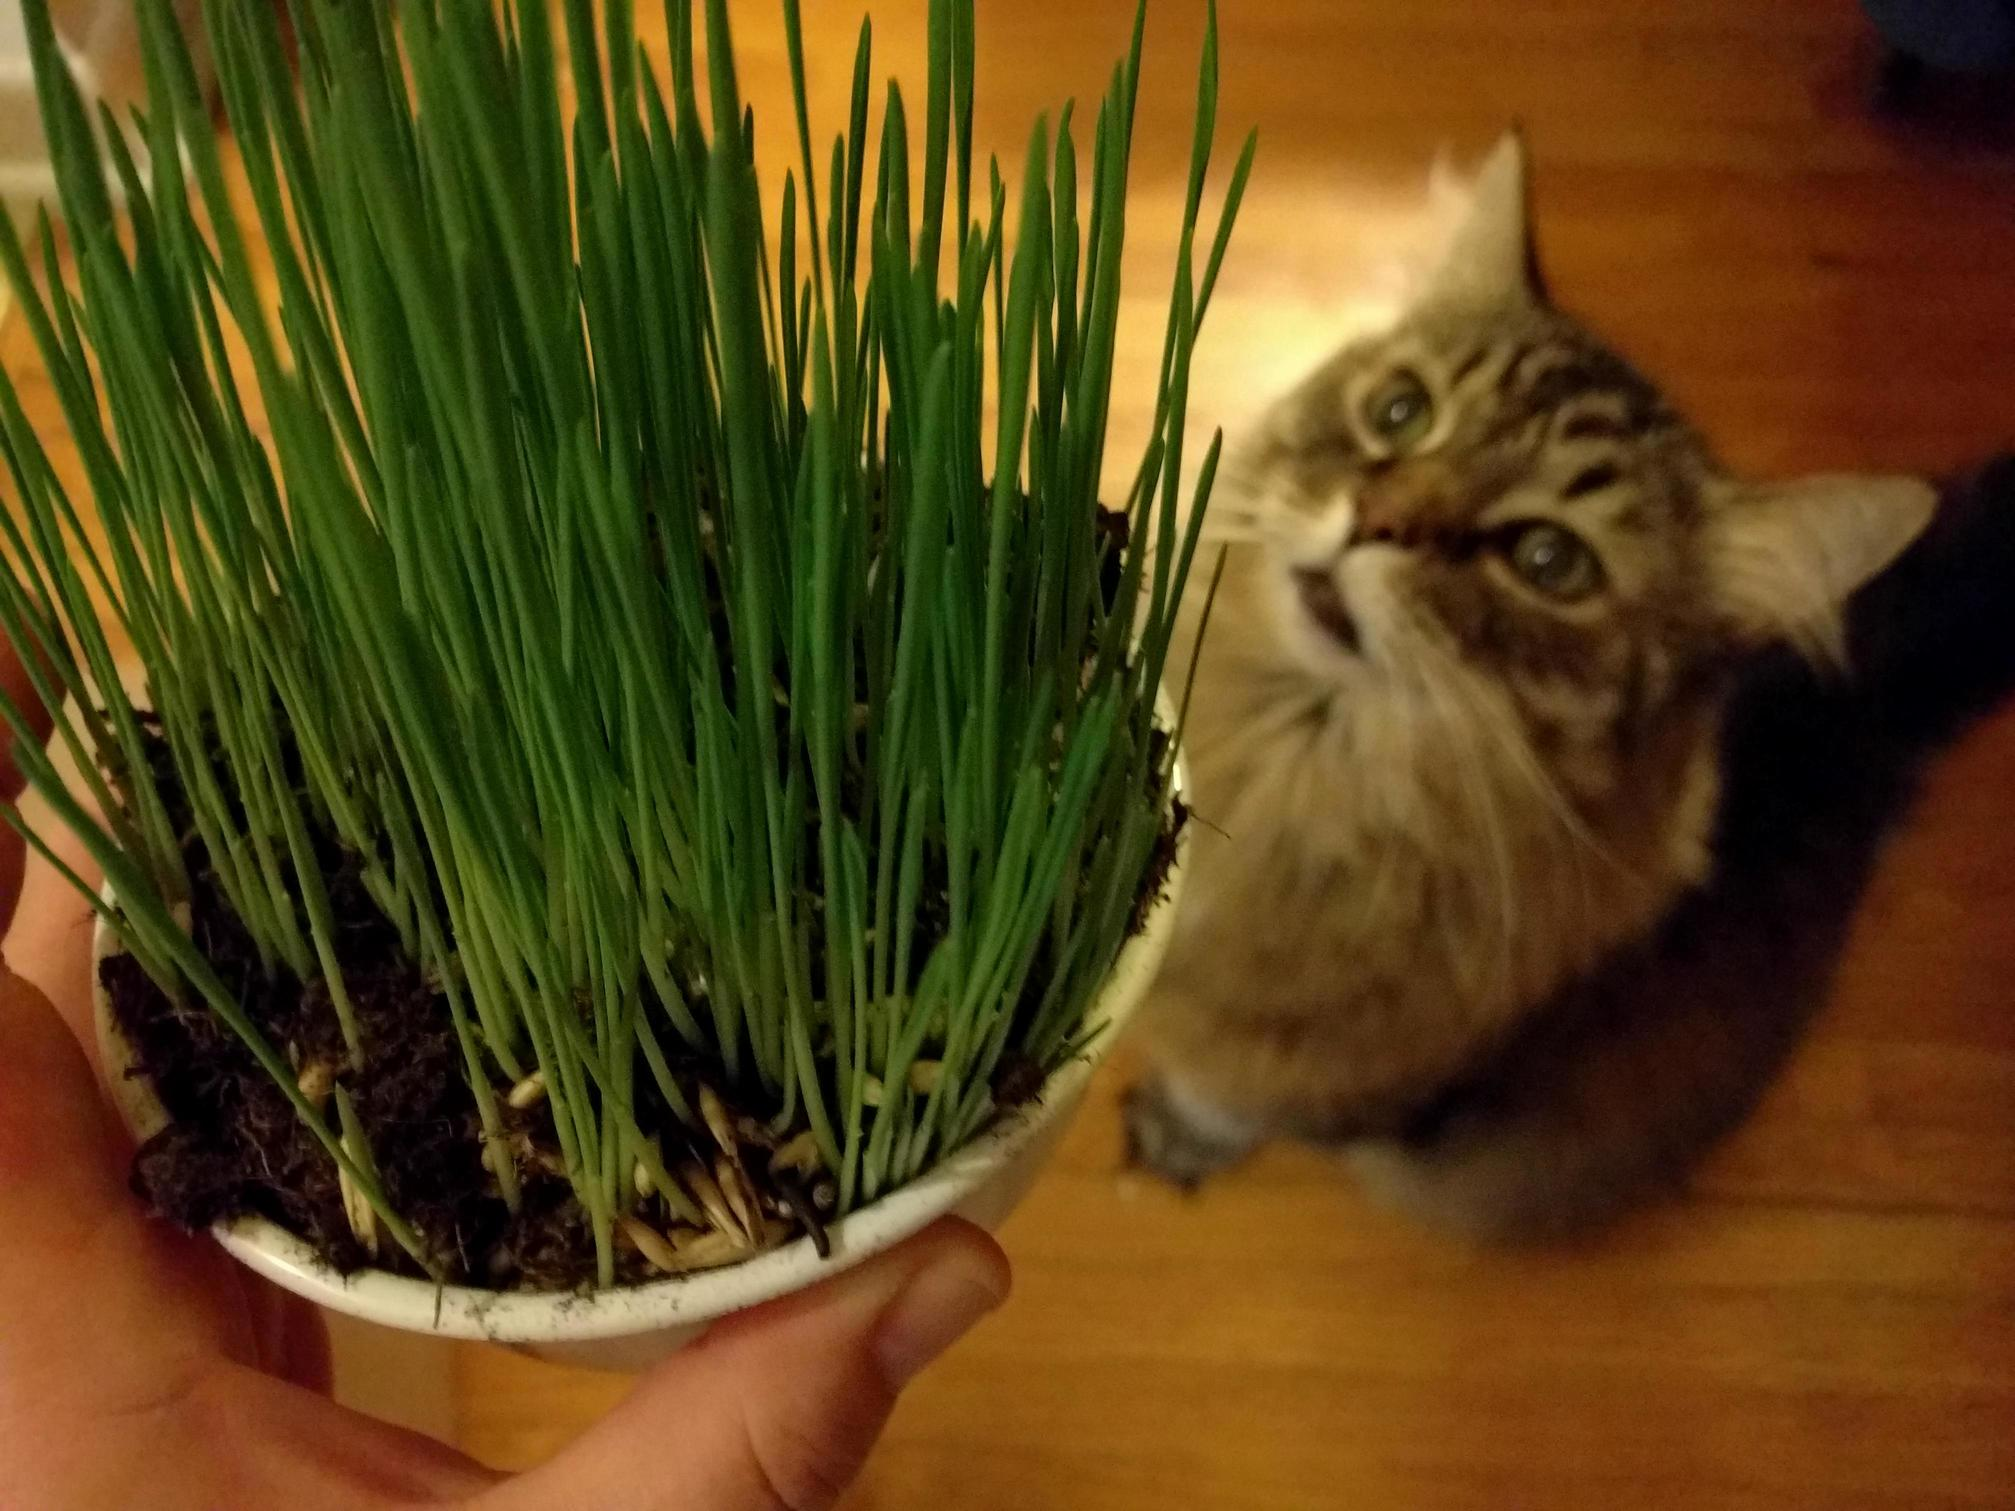 At 16 years old monty is still obsessed with cat grass.